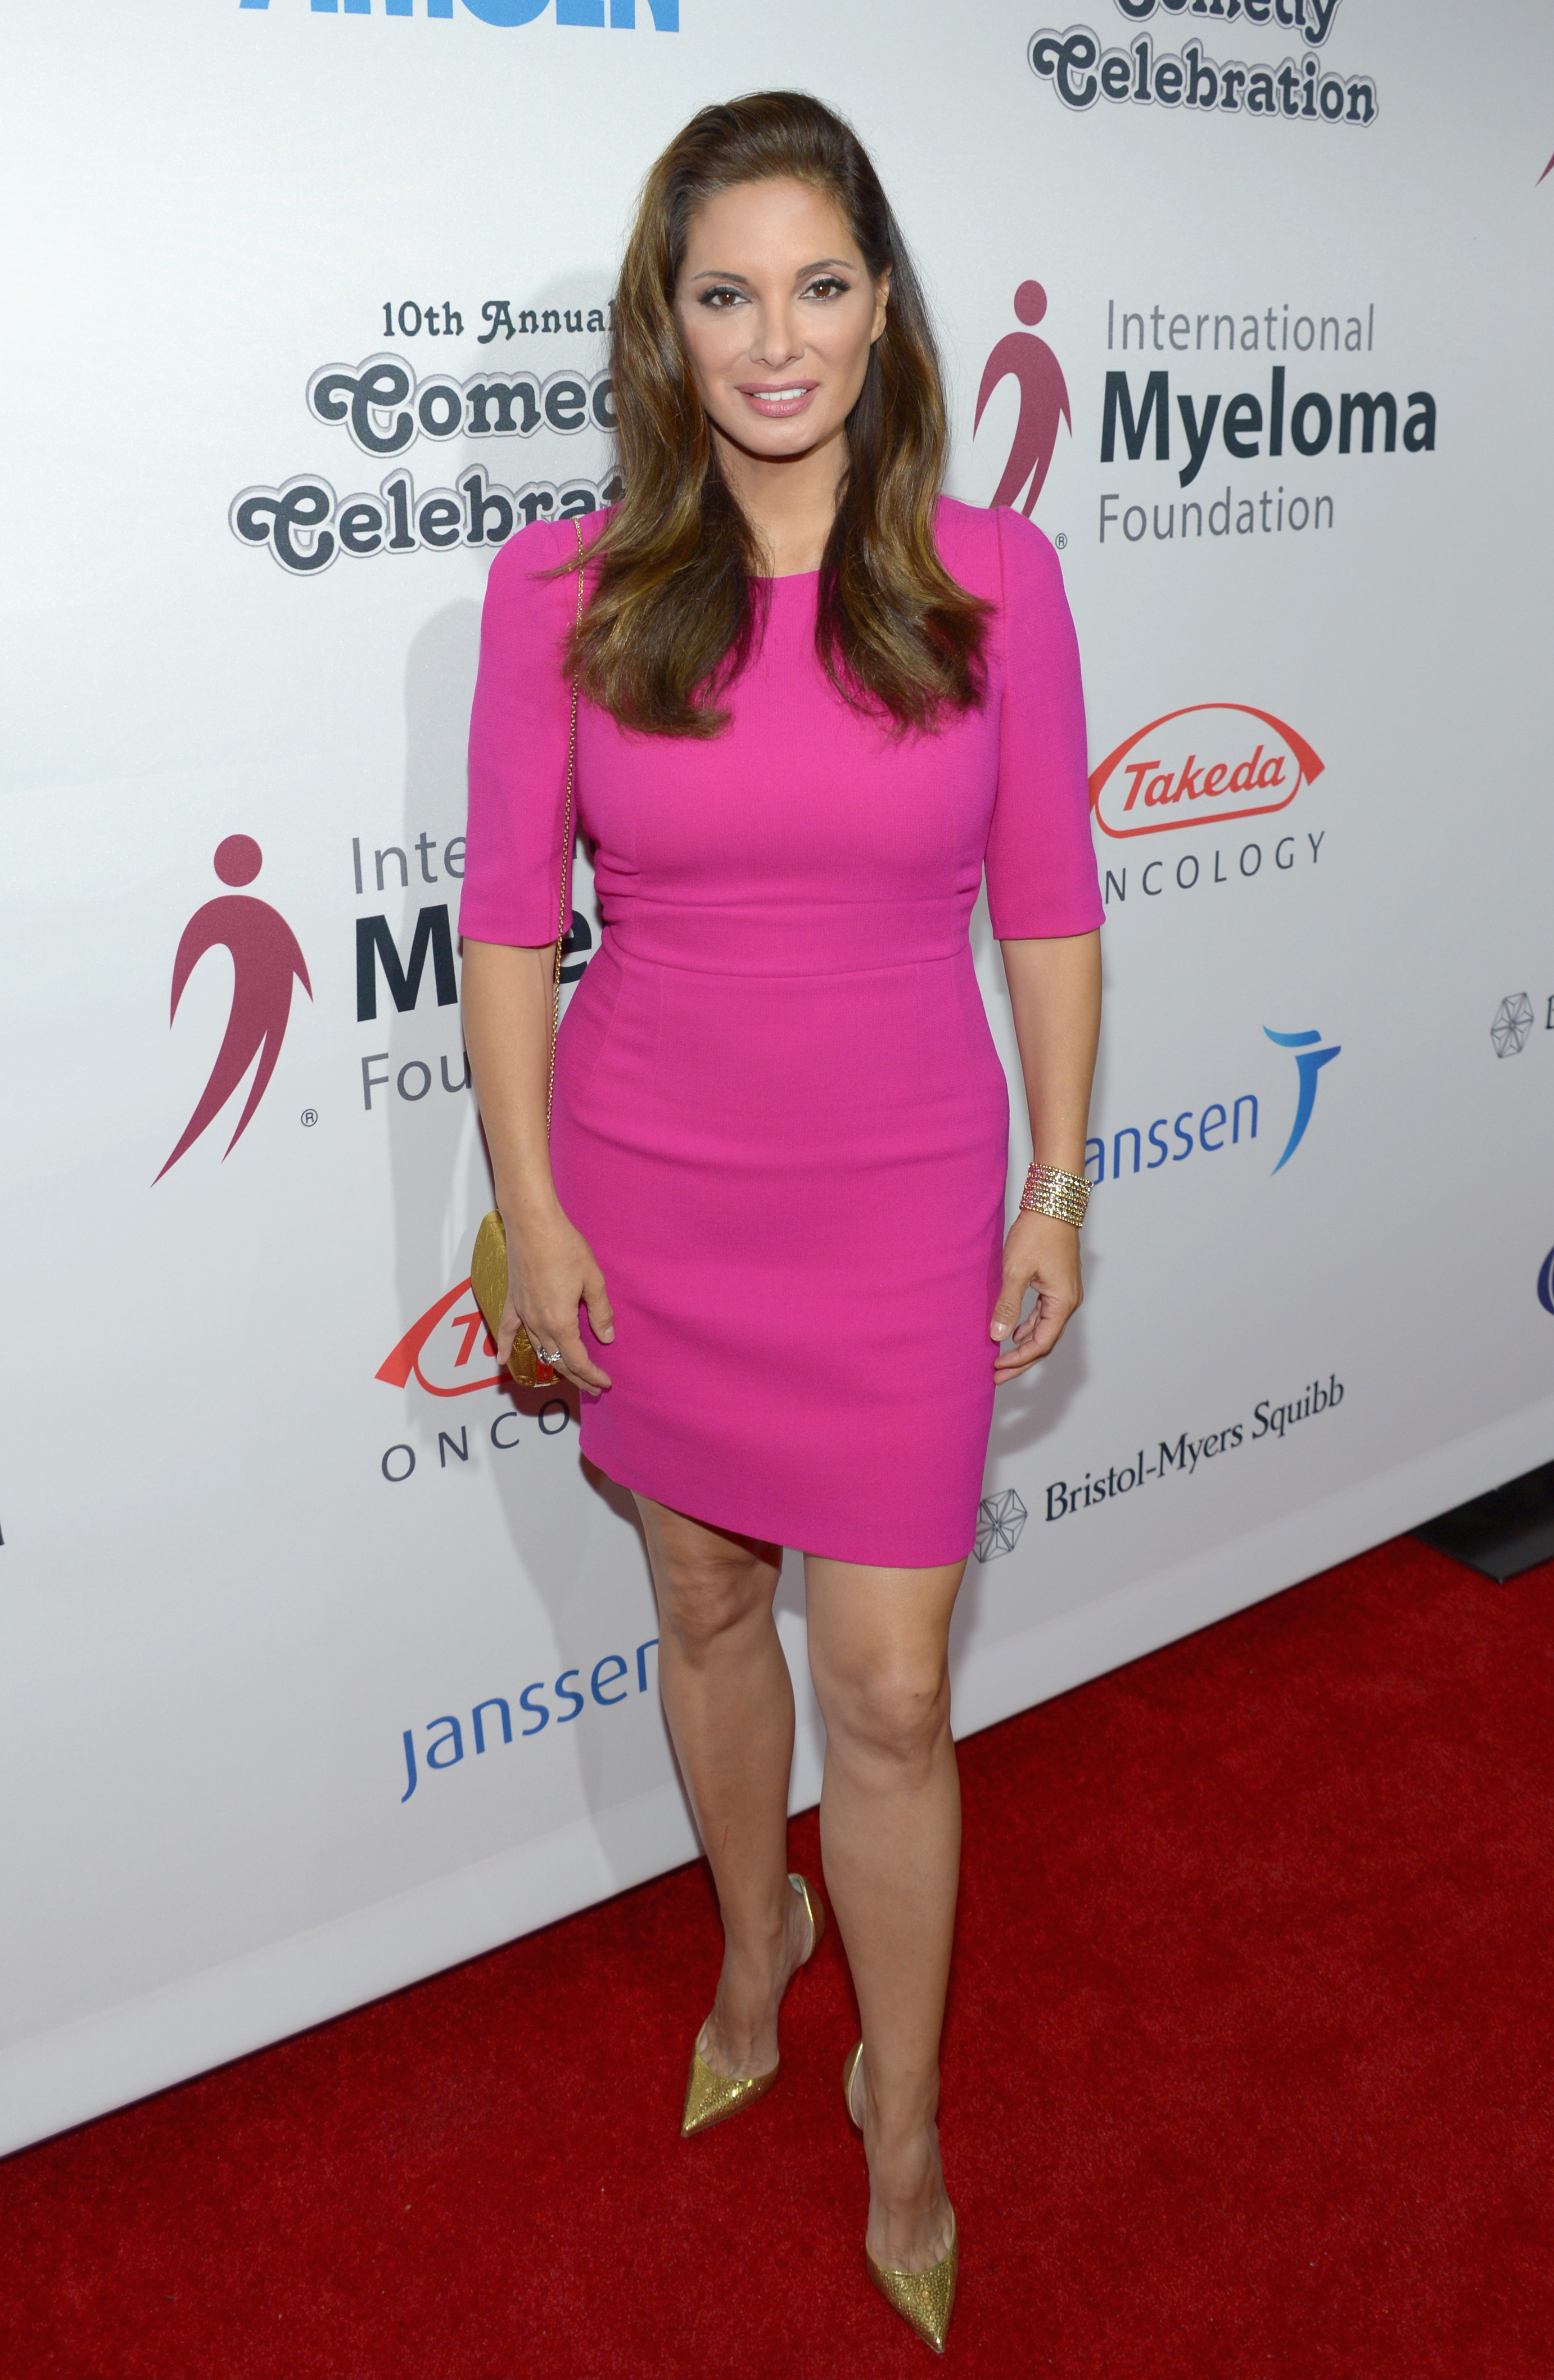 LOS ANGELES, CA - NOVEMBER 05: Actress Alex Meneses attends the International Myeloma Foundation 10th Annual Comedy Celebration at the Wilshire Ebell Theatre on November 5, 2016 in Los Angeles, California. (Photo by Matt Winkelmeyer/Getty Images for International Myeloma Foundation)